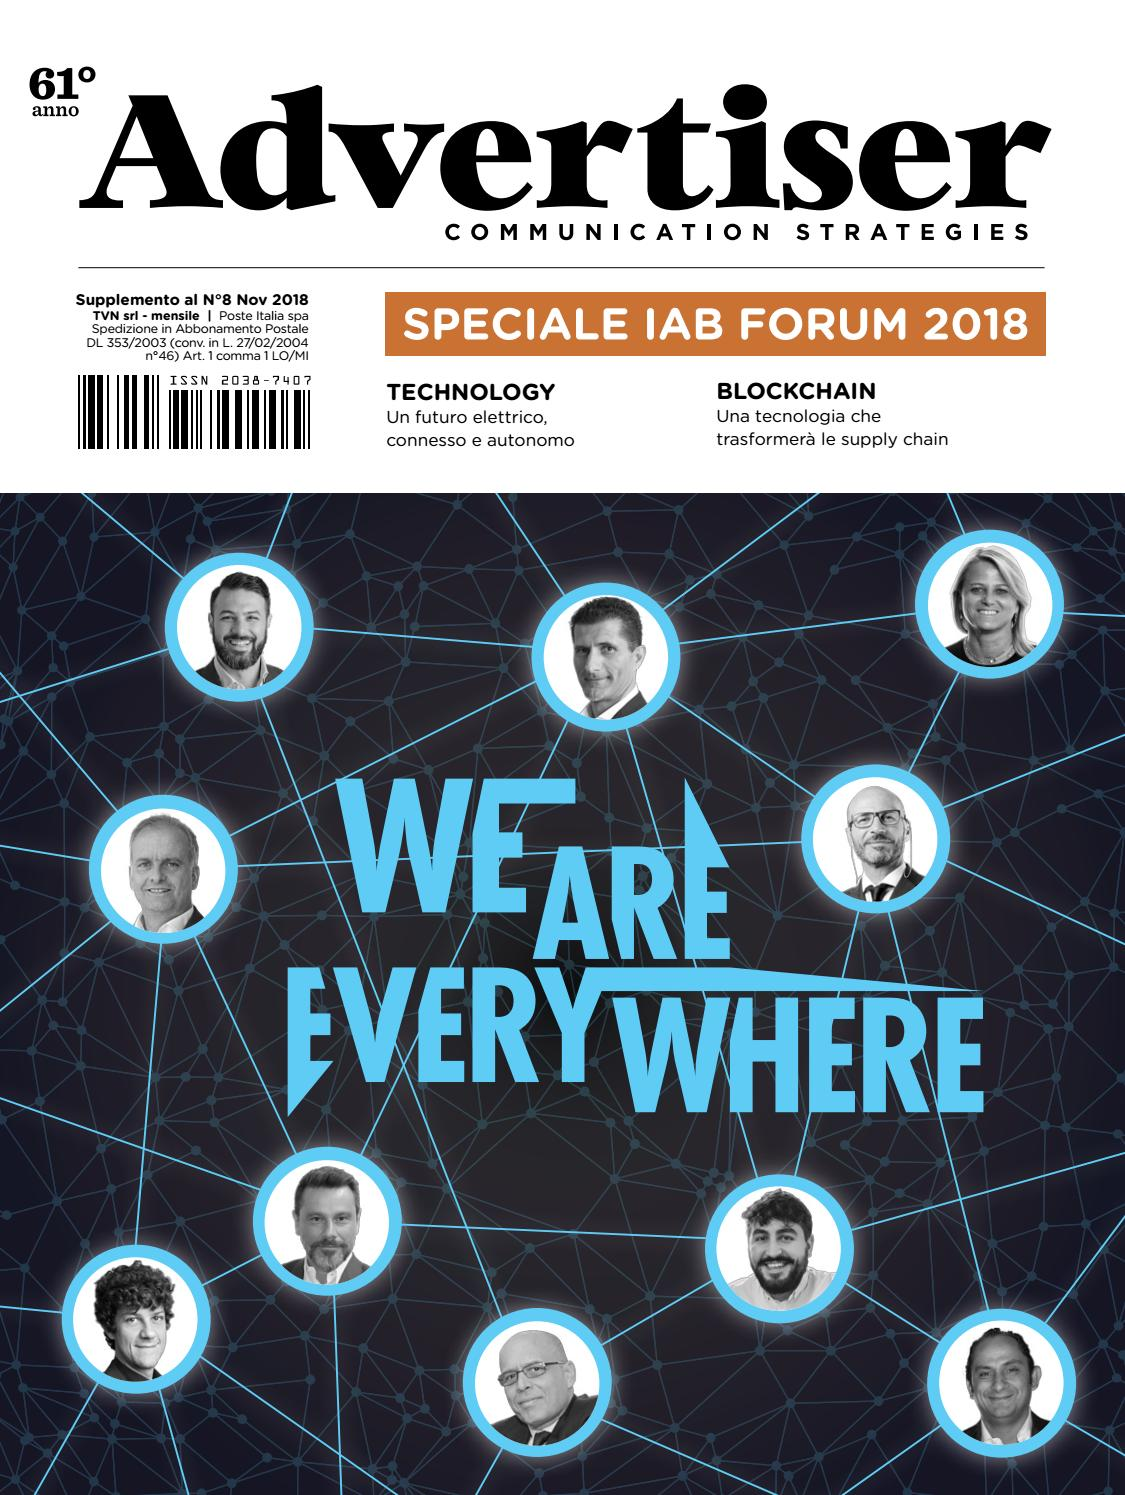 Advertiser - Speciale IAB Forum 2018 by tvnmediagroup5 - issuu cb144f24172